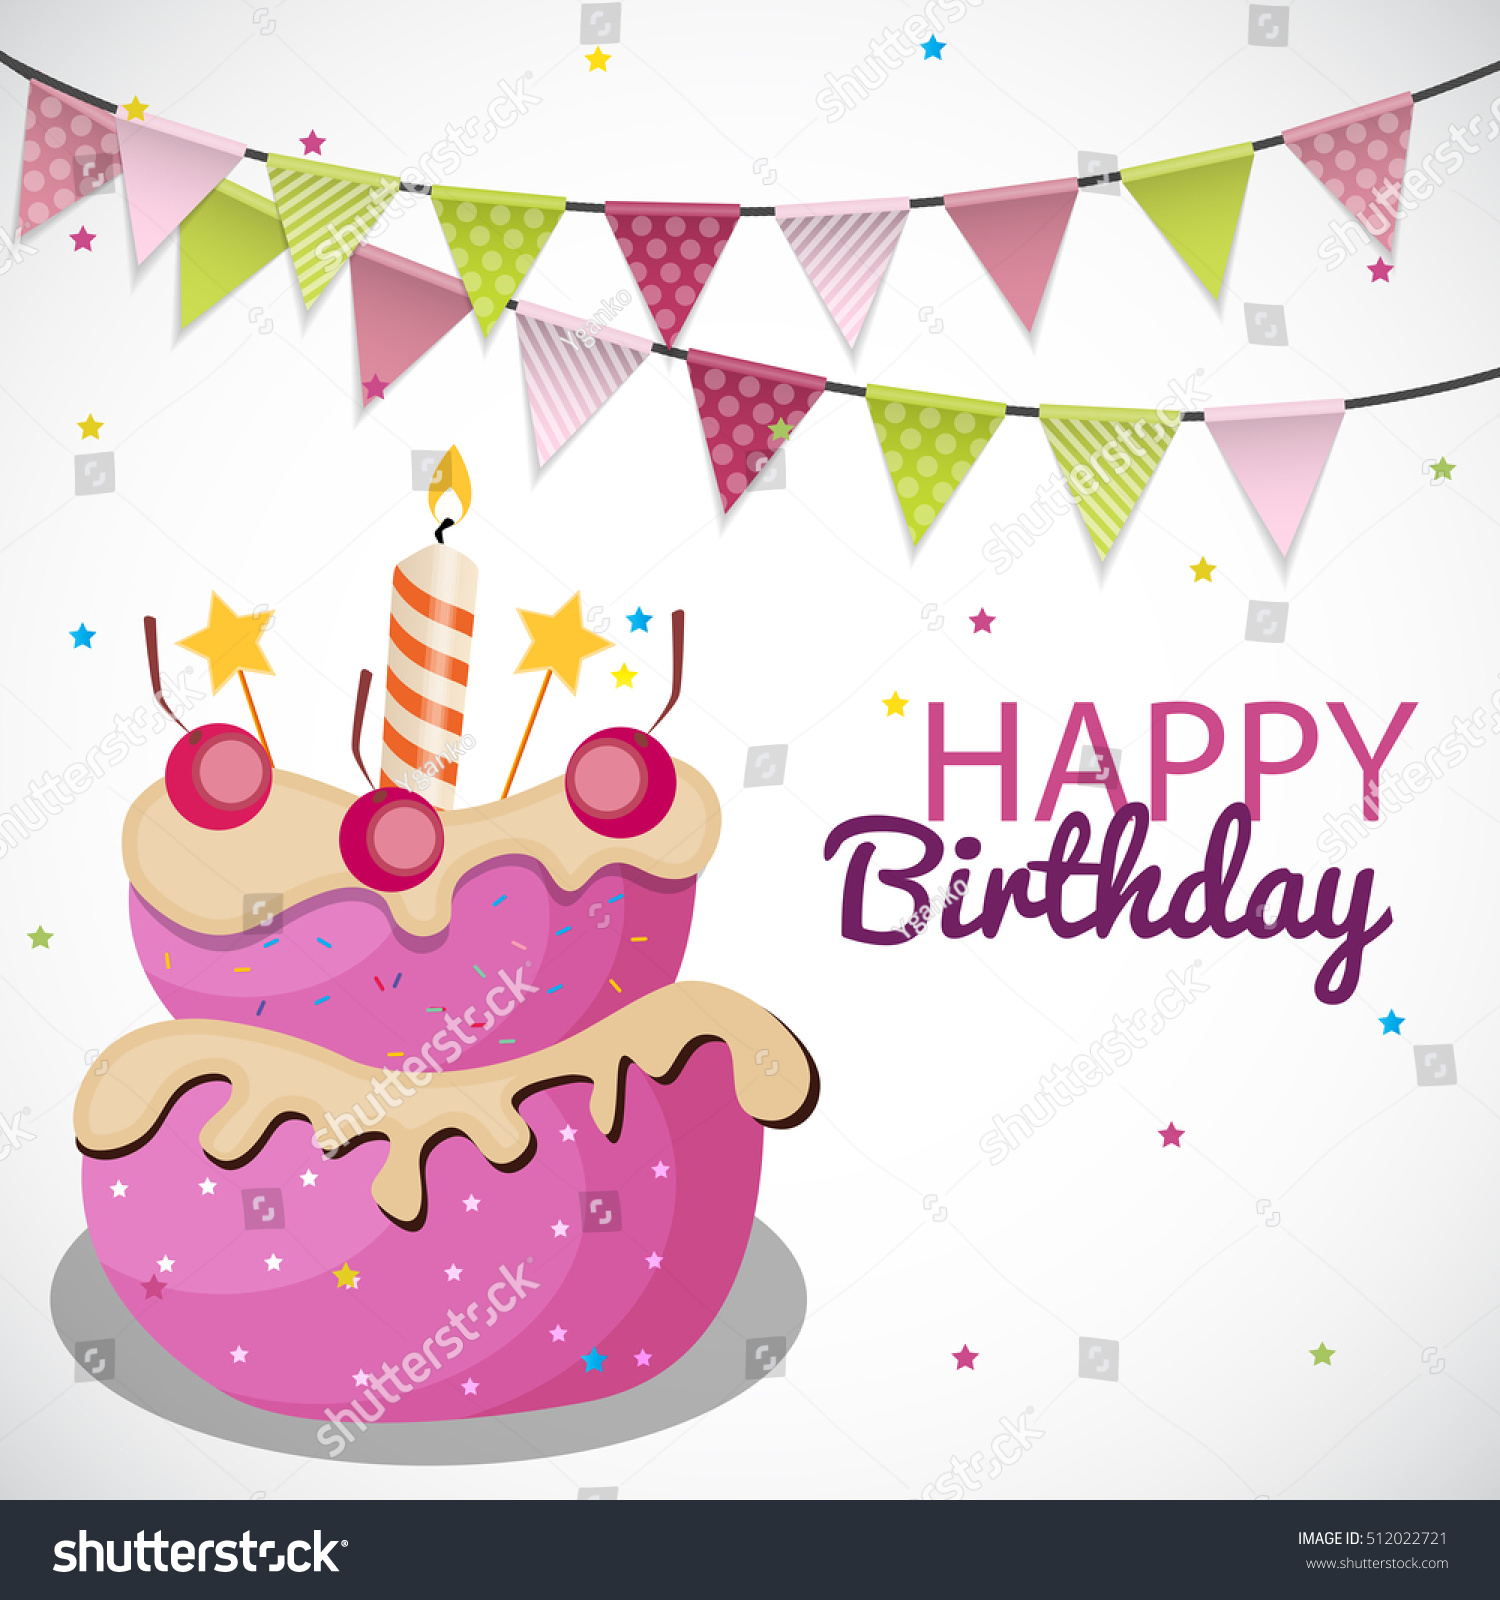 Happy birthday card template balloons ribbon stock illustration happy birthday card template with balloons ribbon and candle illustration pronofoot35fo Image collections